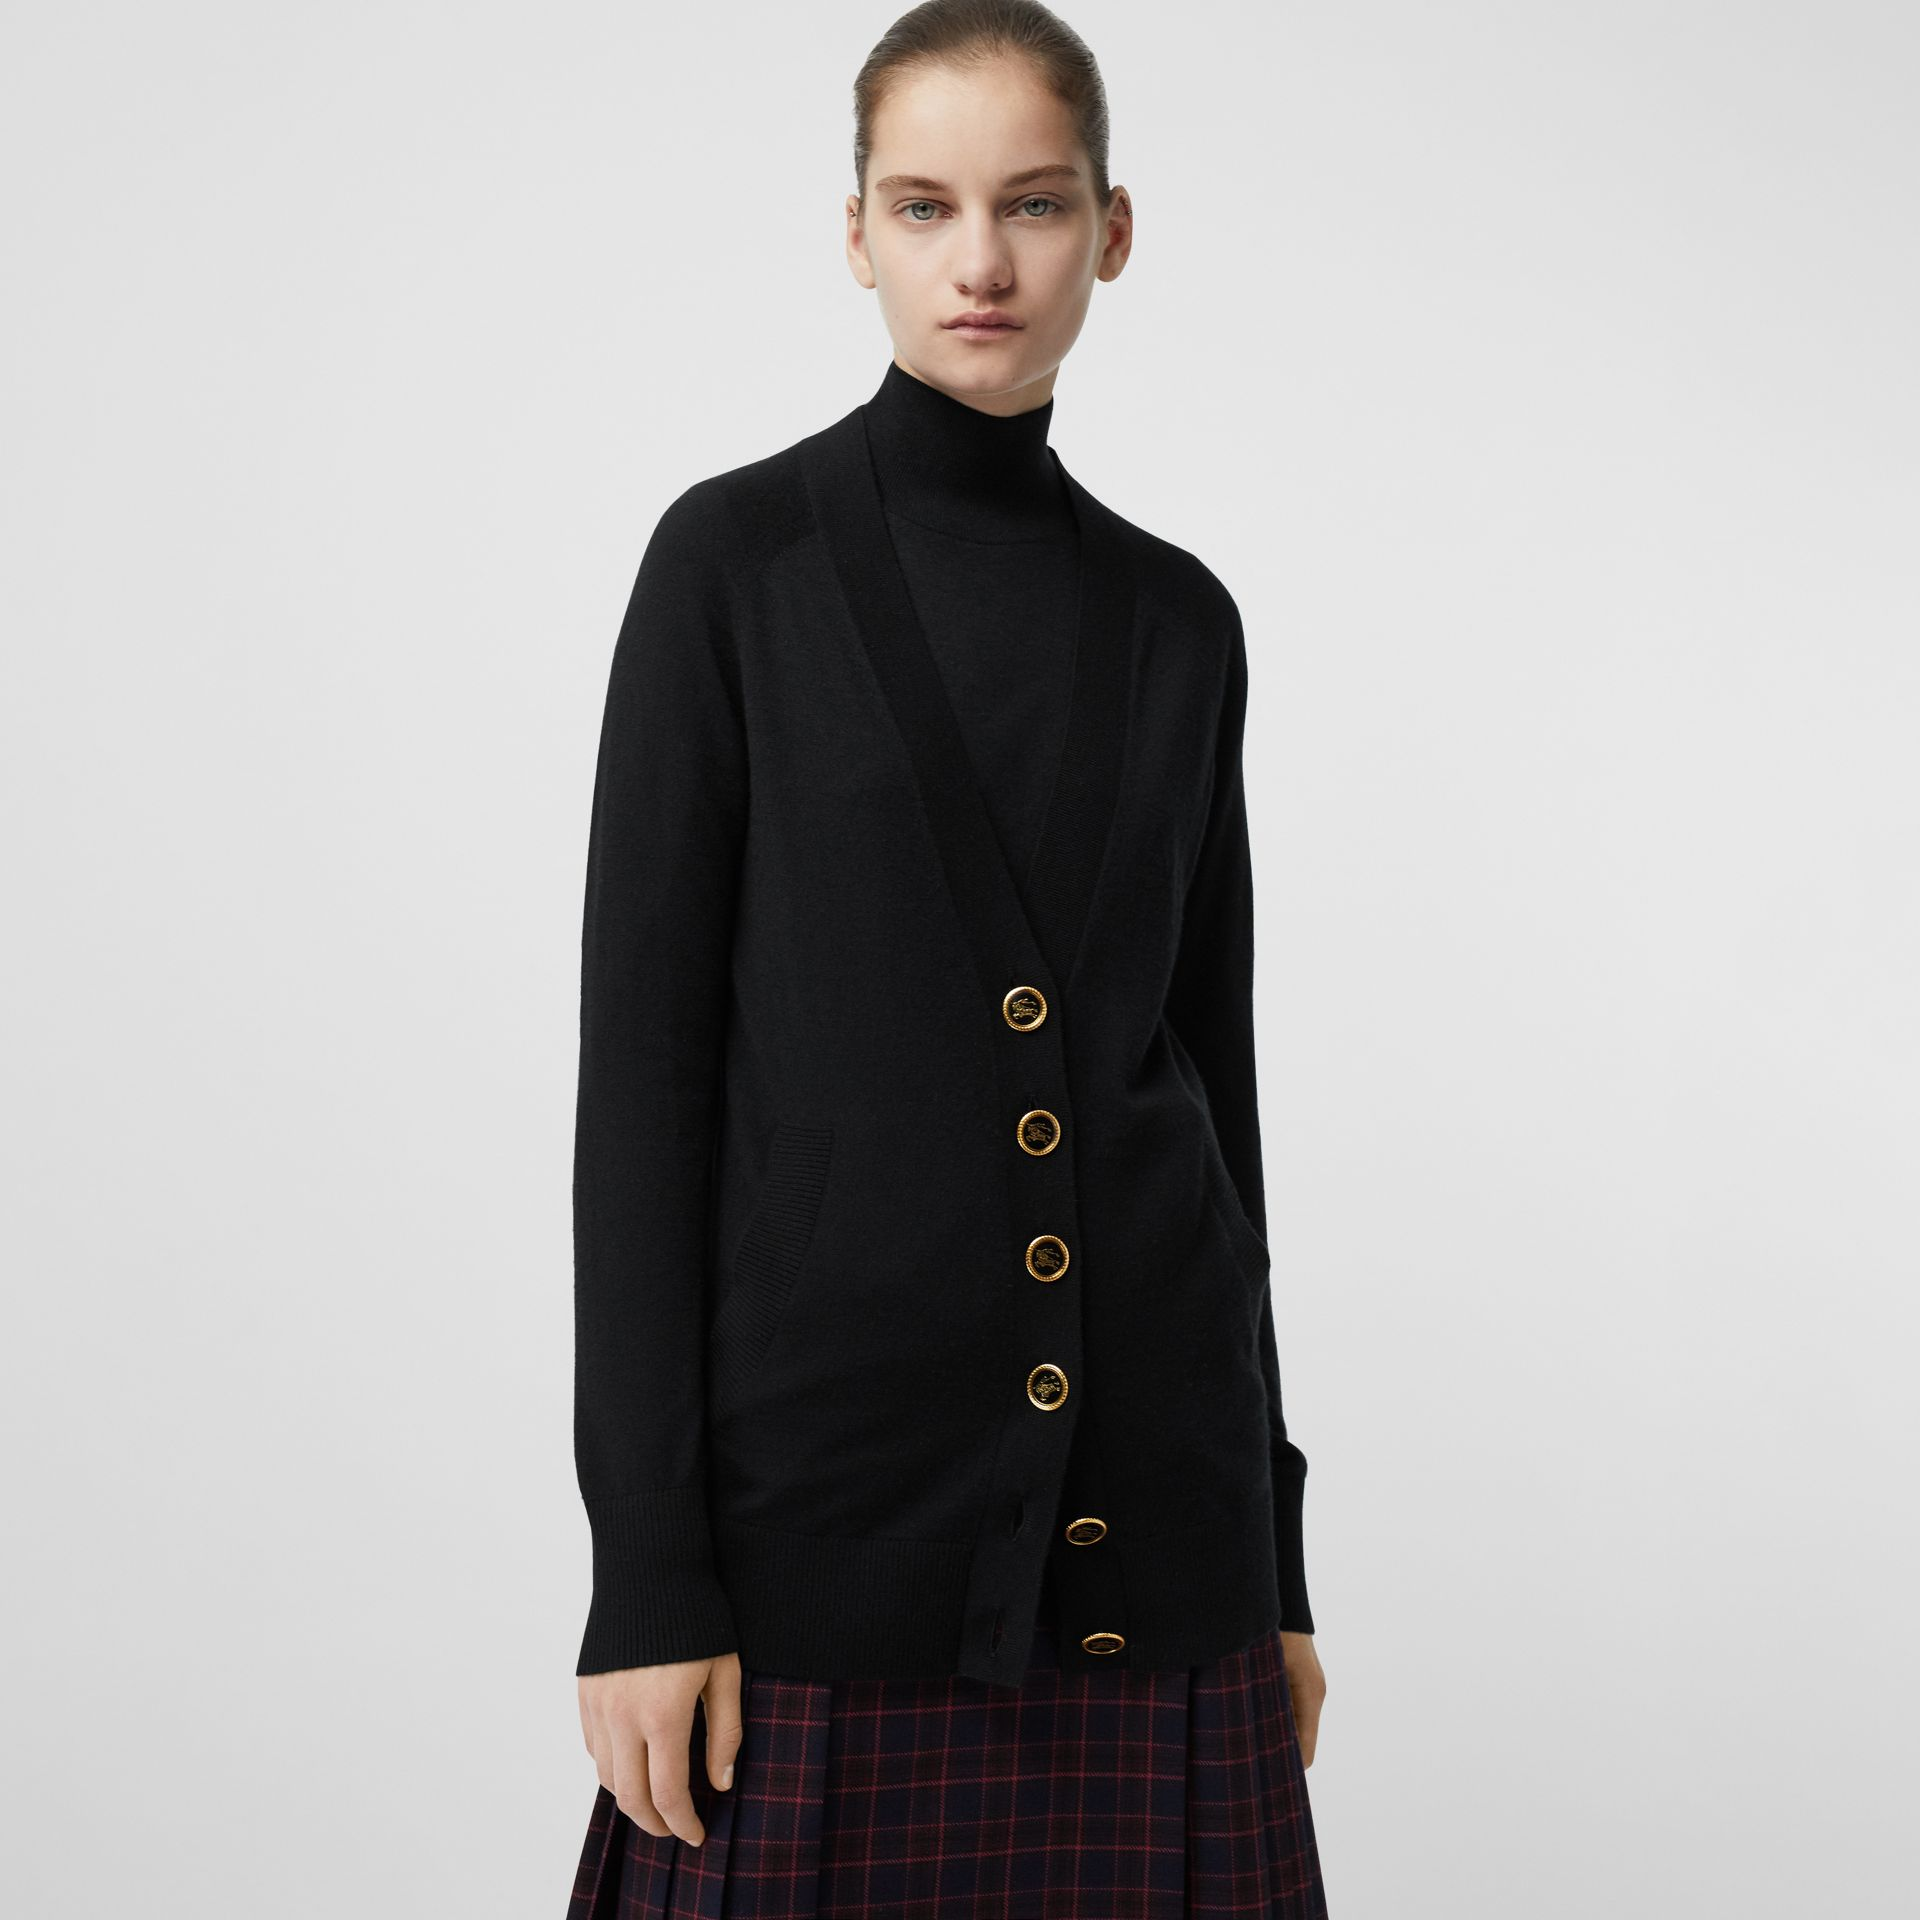 Cashmere V-neck Cardigan in Black - Women | Burberry - gallery image 4